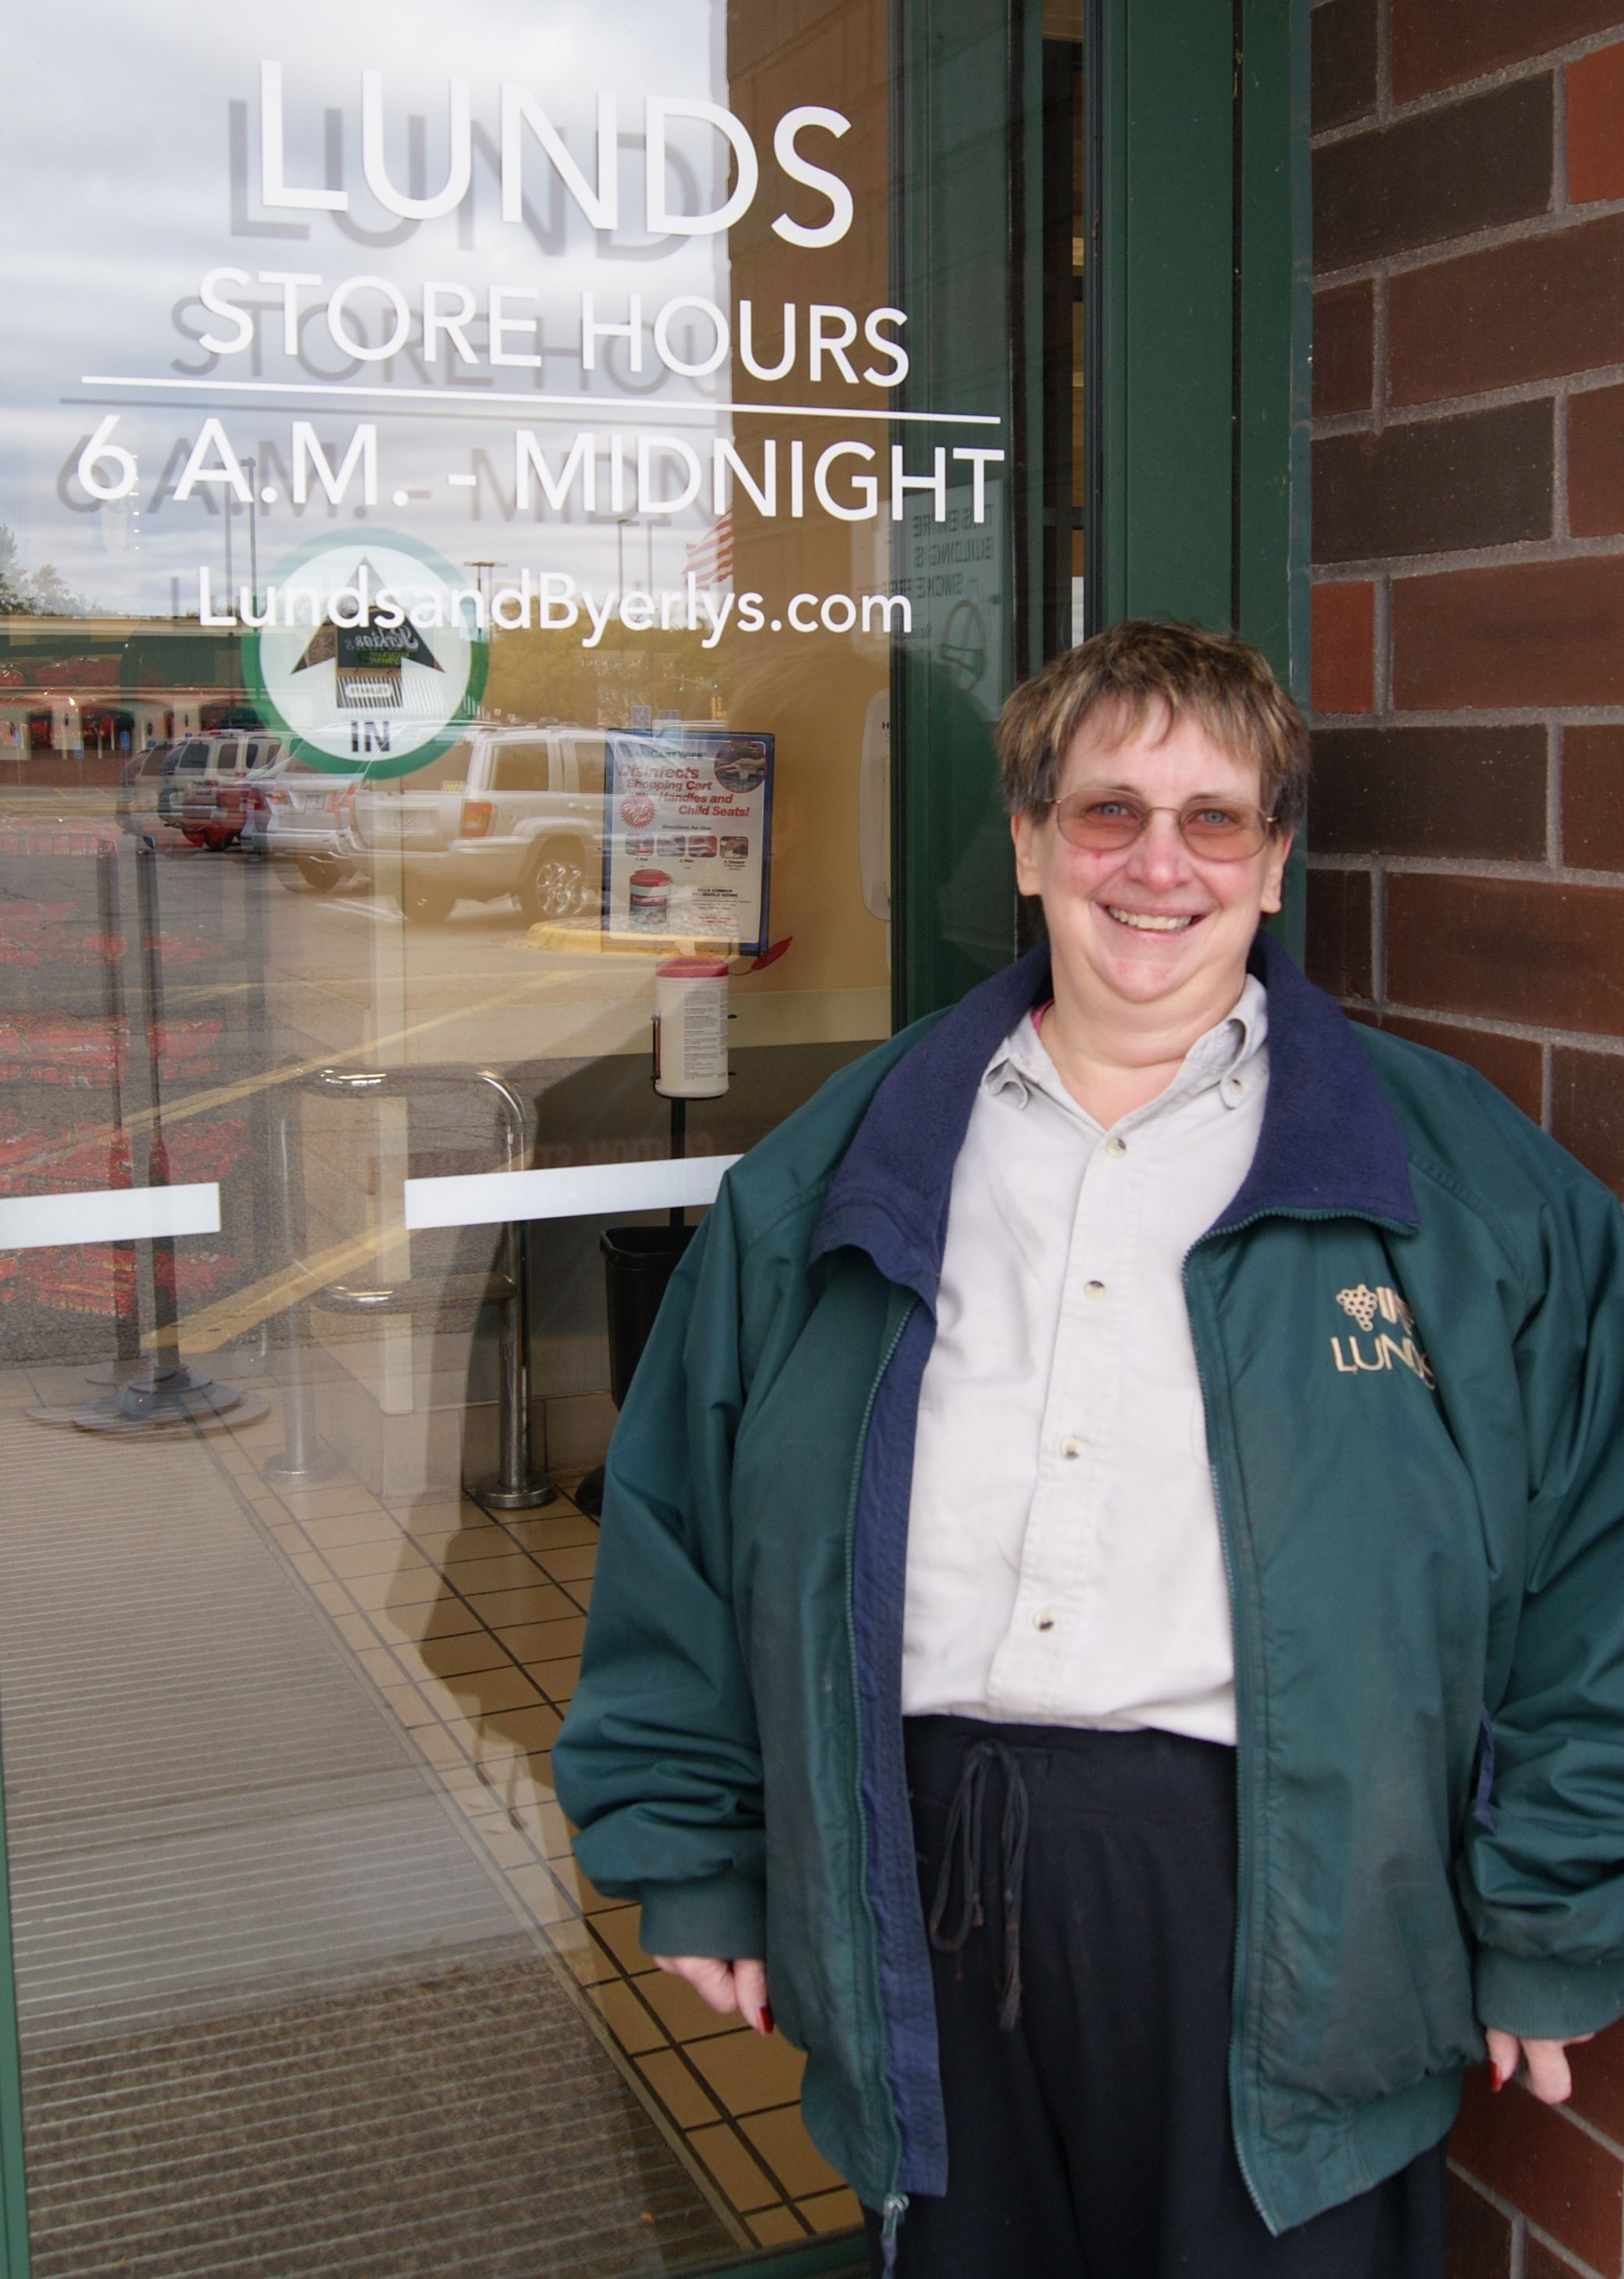 """In honor of National Disability Employment Awareness Month, we would like to thank @Lunds and Byerly's for supporting employment for people with disabilities. Trish (pictured) has worked at Lunds - Bloomington for about one year and loves her job. Her managers and co-workers provide a great support system to help her succeed. """"The people here are like family,"""" says Trish. Thank you Lunds! #NDEAM"""